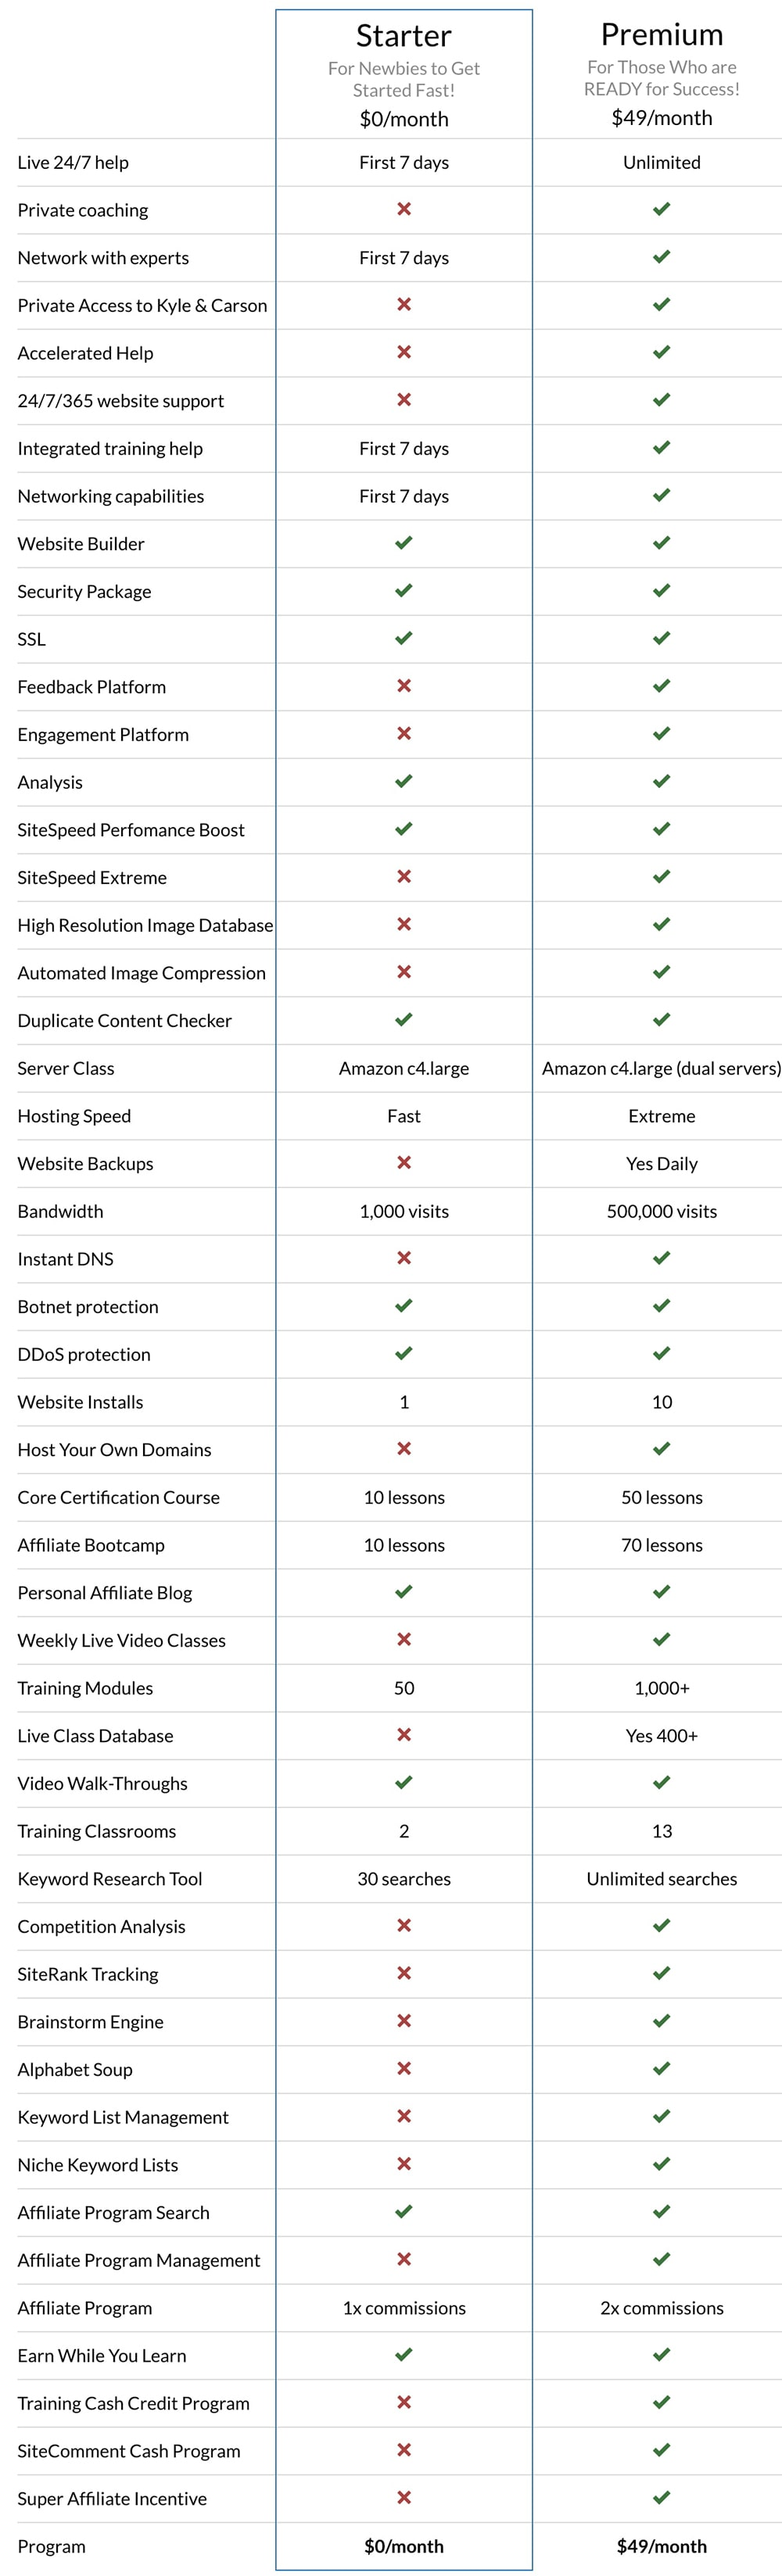 My Wealthy Affiliate Review - Comparison Chart